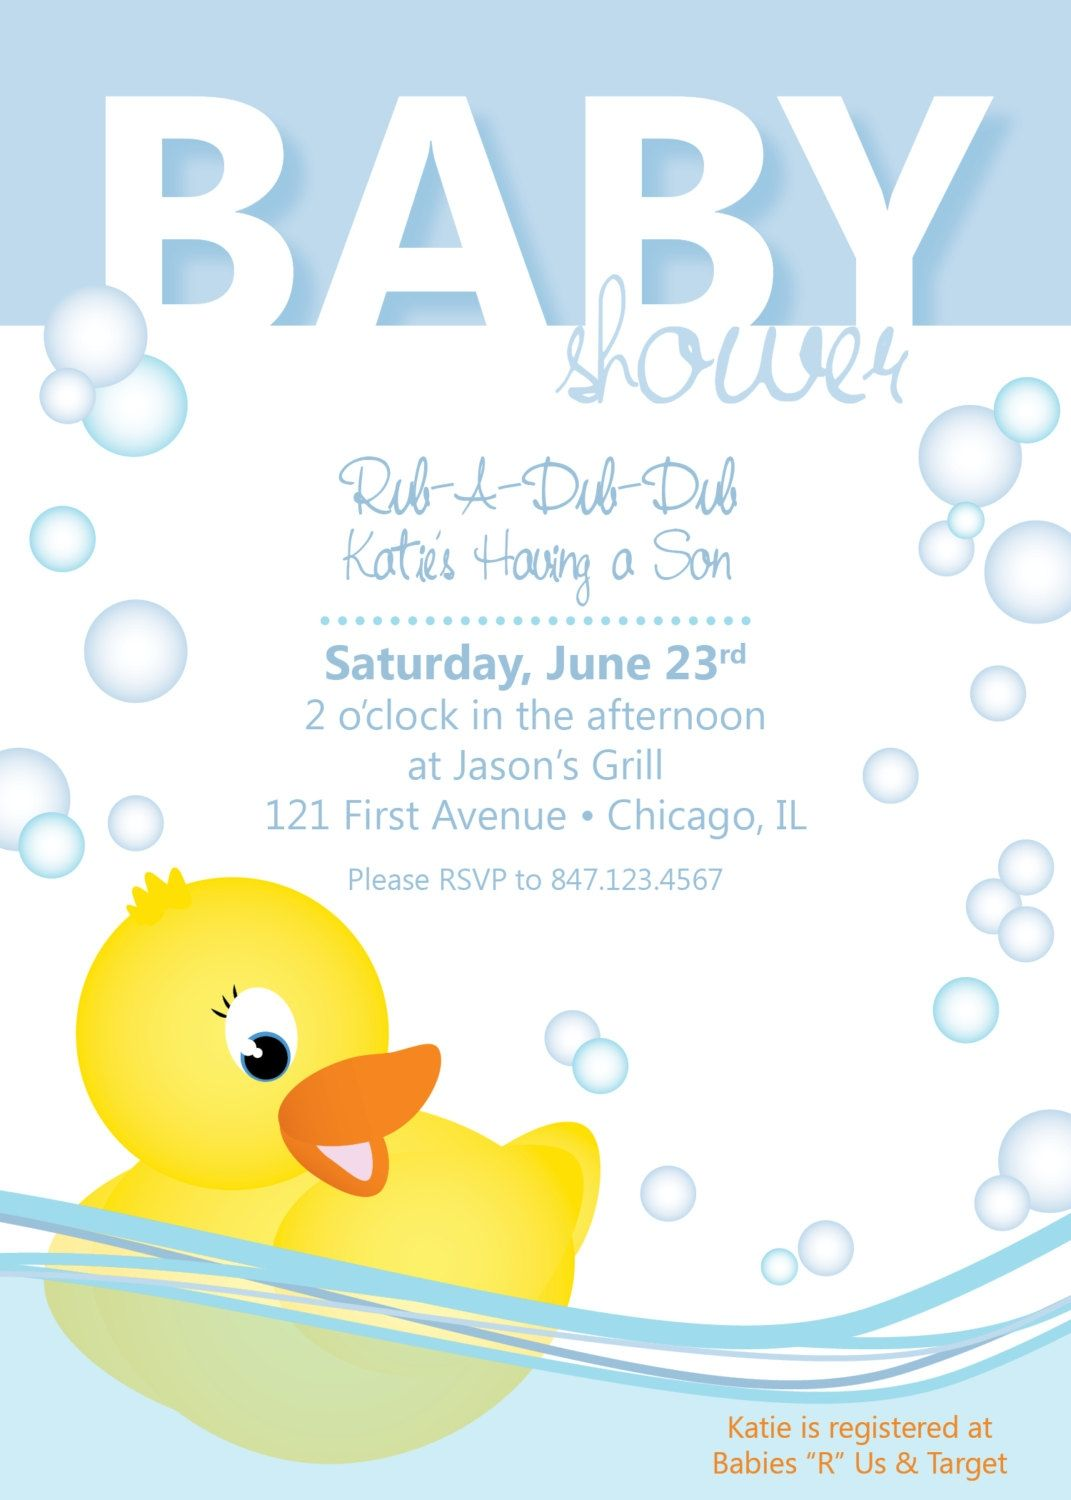 Rubber Ducky Baby Shower Invitations Template | http://atwebry.info ...